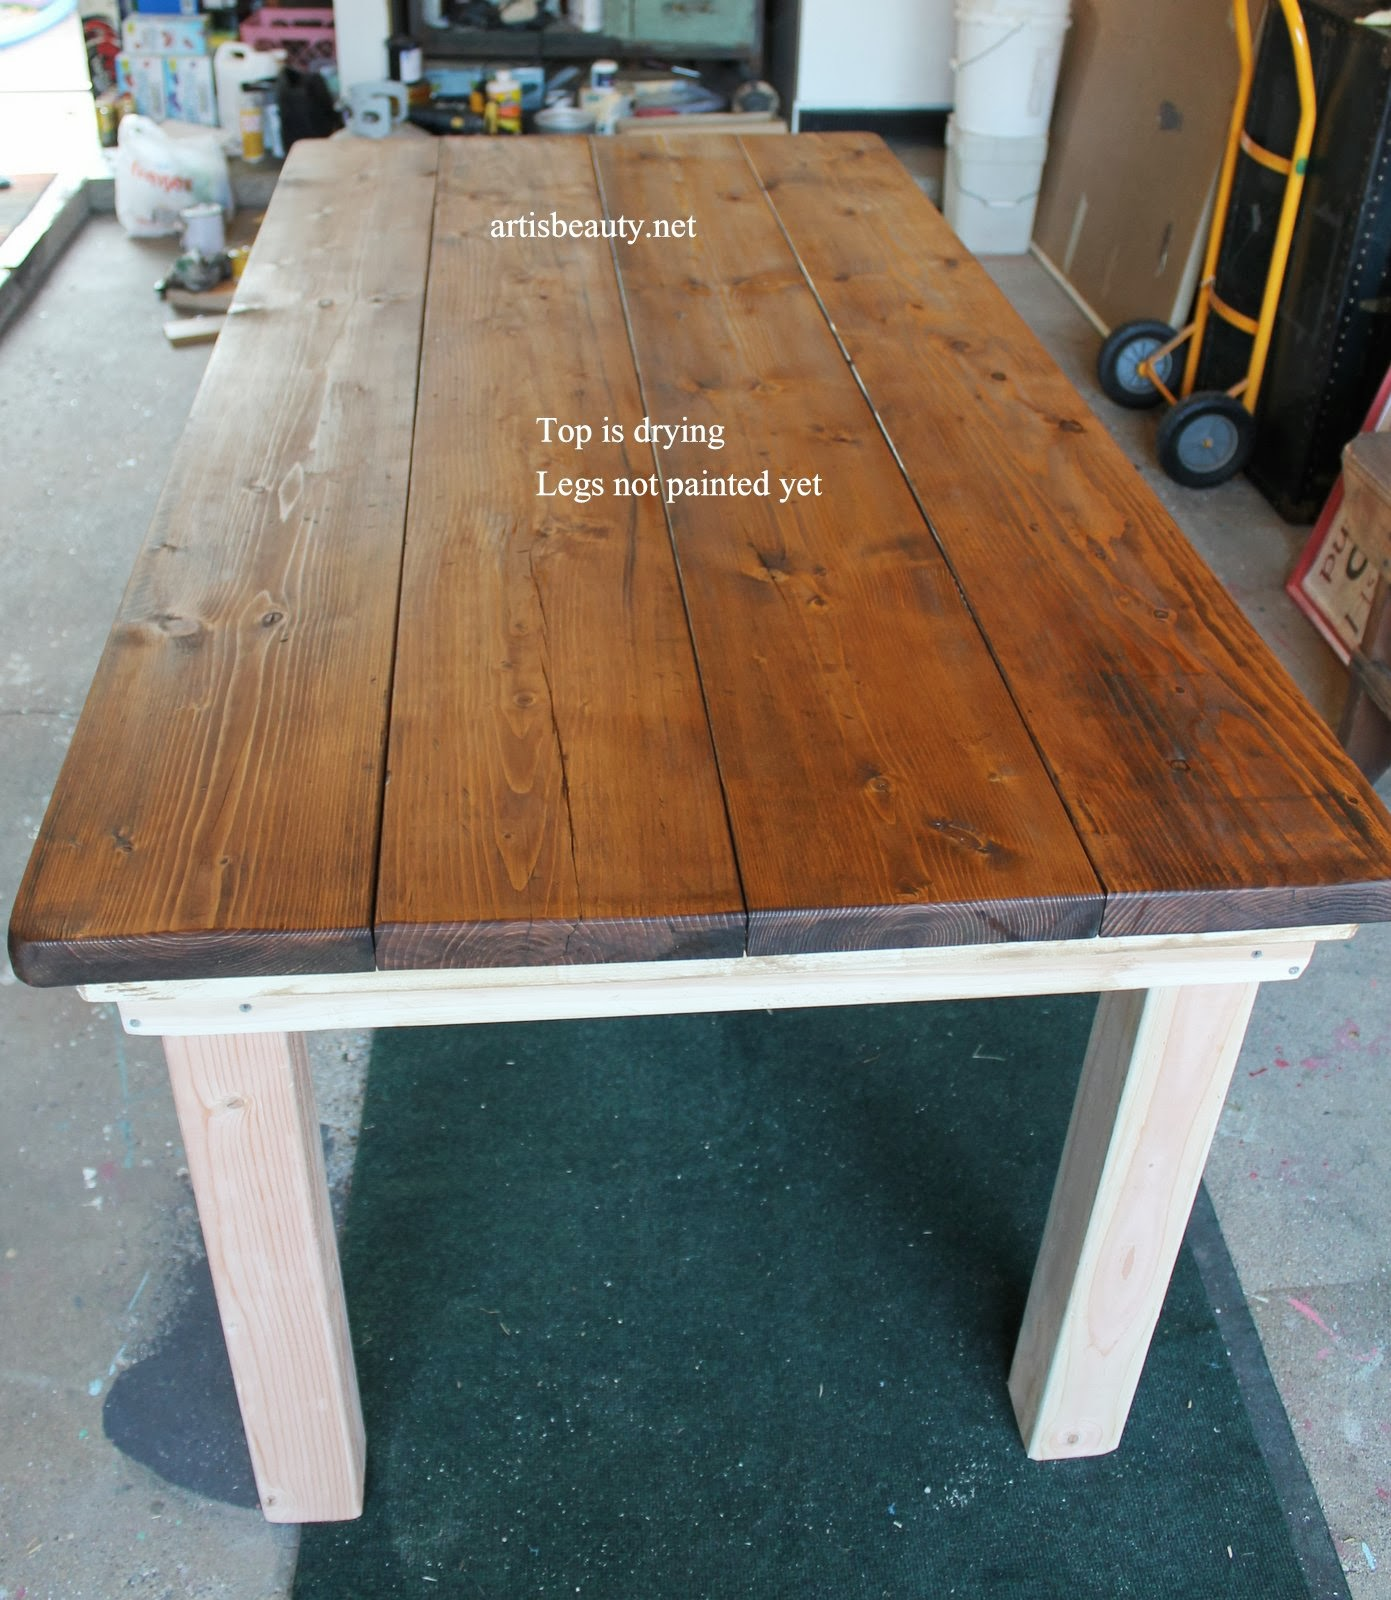 Remodelaholic build a farmhouse table for under 100 Diy farmhouse table